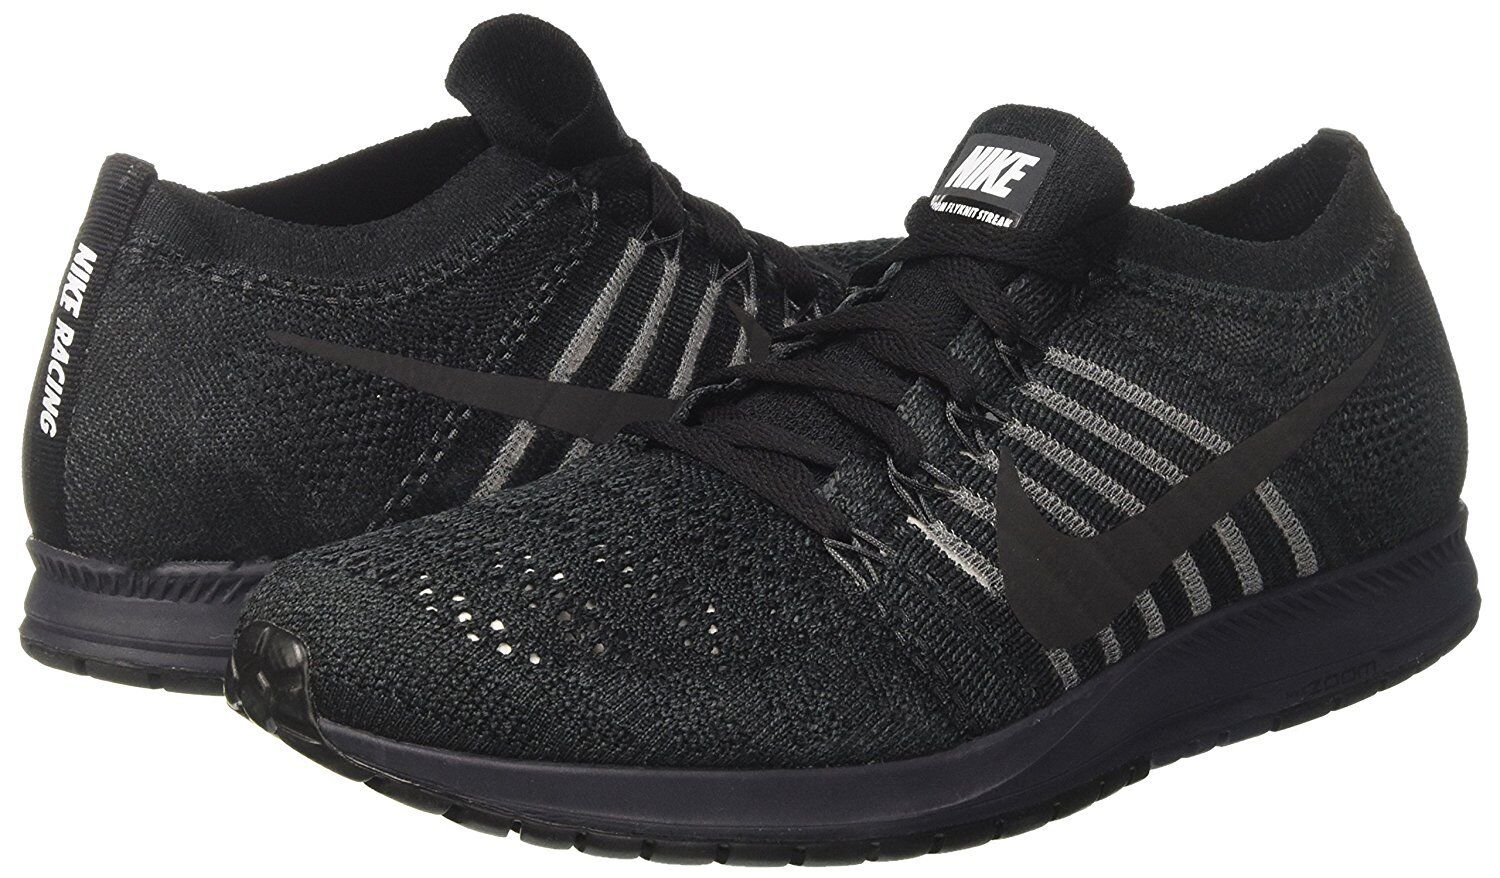 3040d09567a27 Nike NikeLab Zoom Flyknit Streak Running Shoes Black 904711 001 Reflective  for sale online